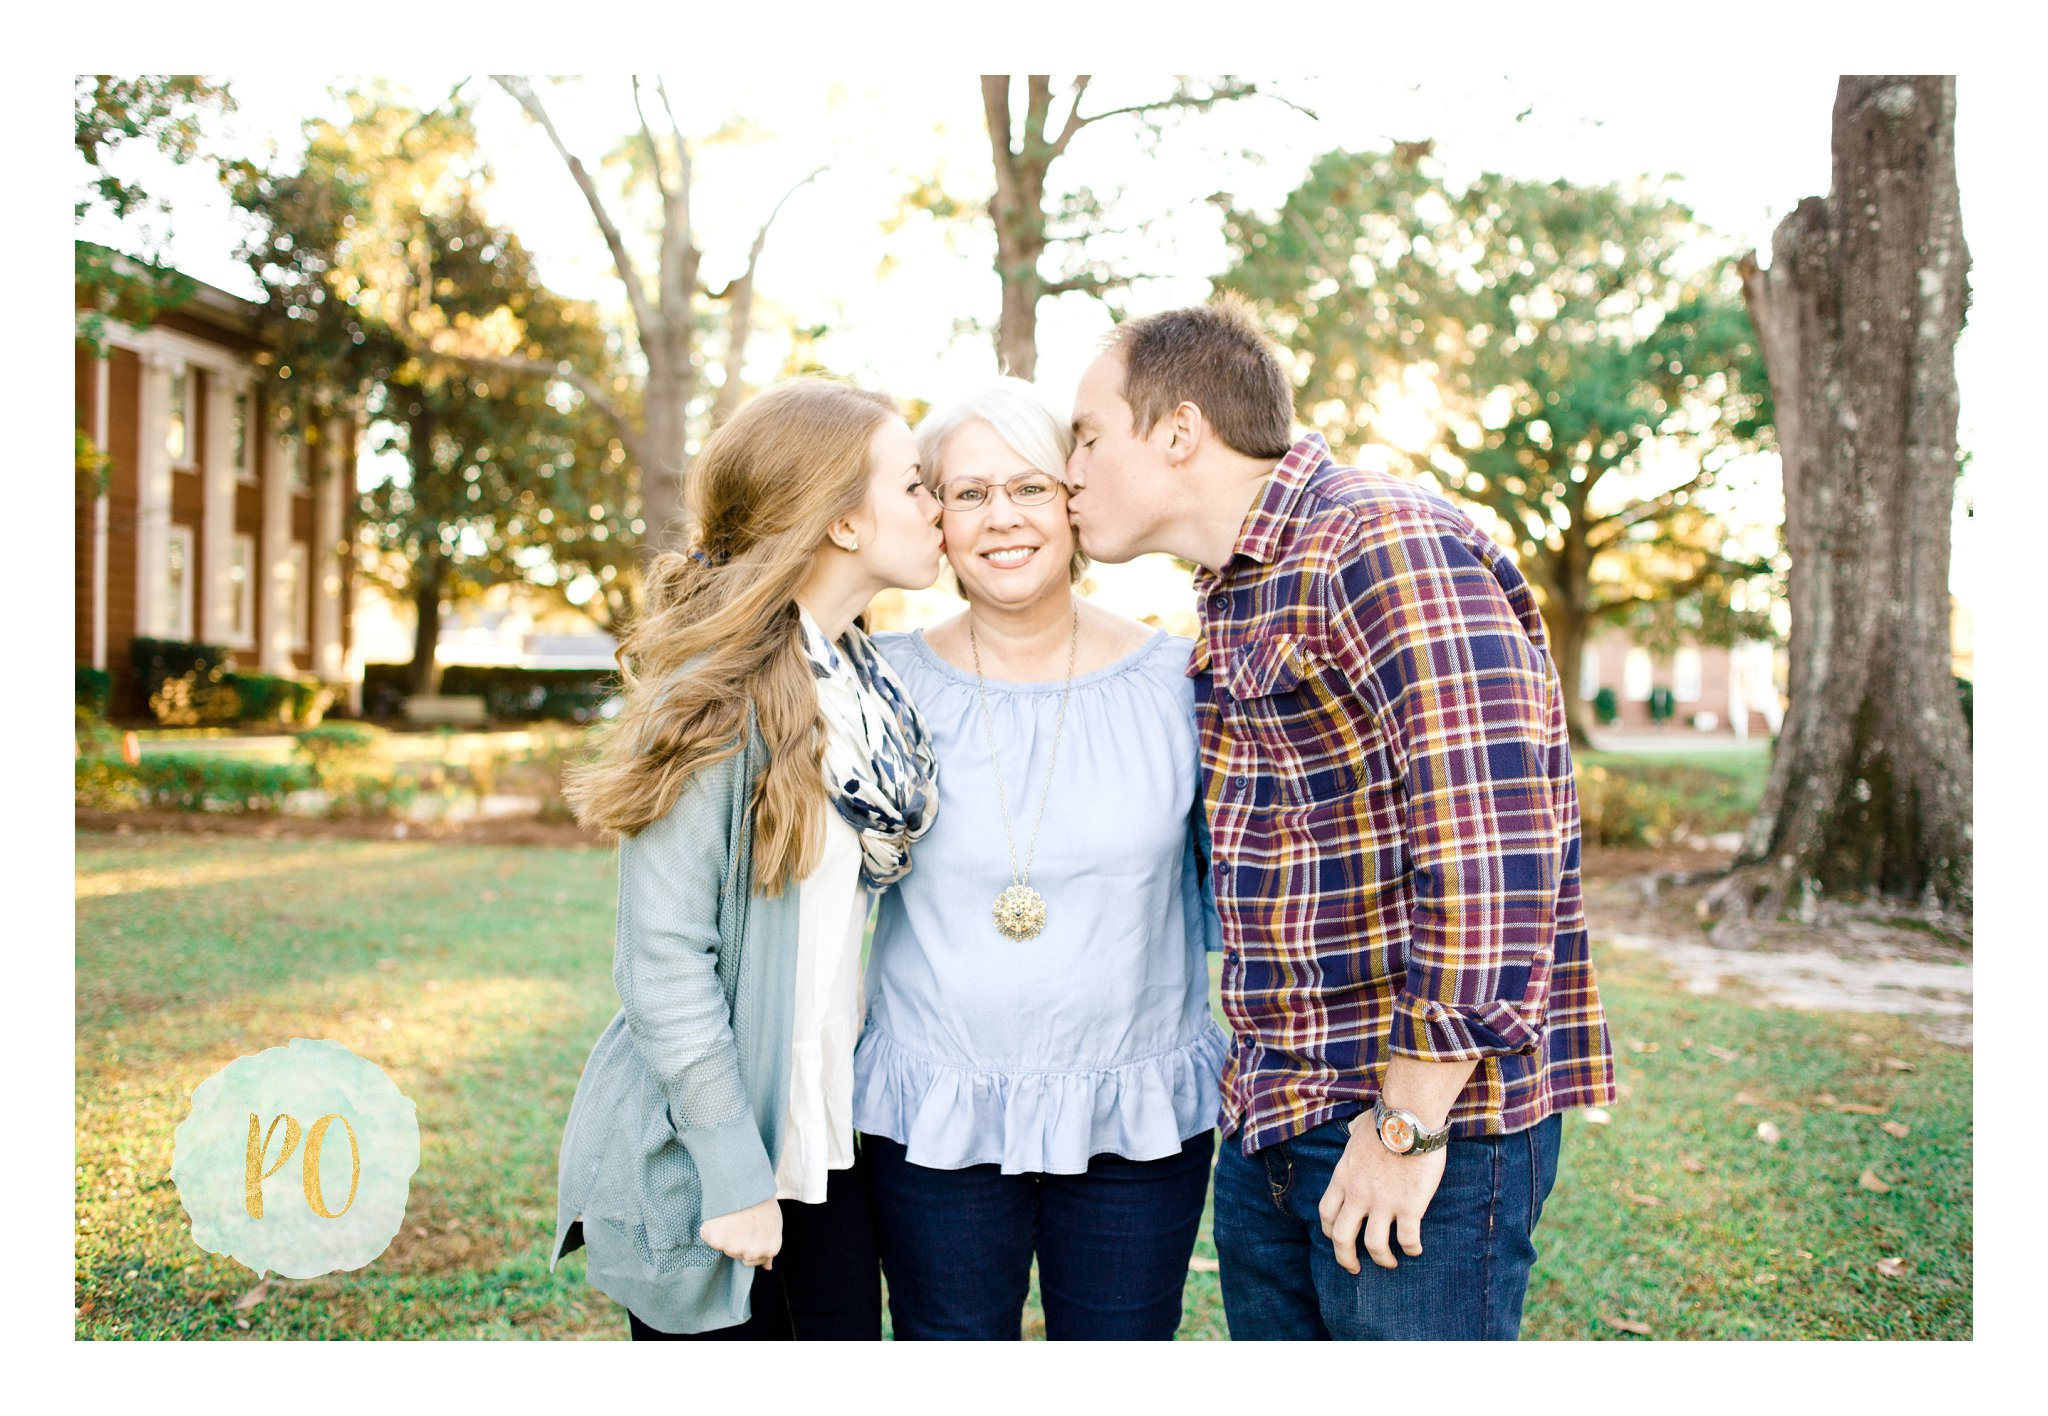 fall-downtown-family-session-myrtle-beach-conway-sc-photos_0027.jpg